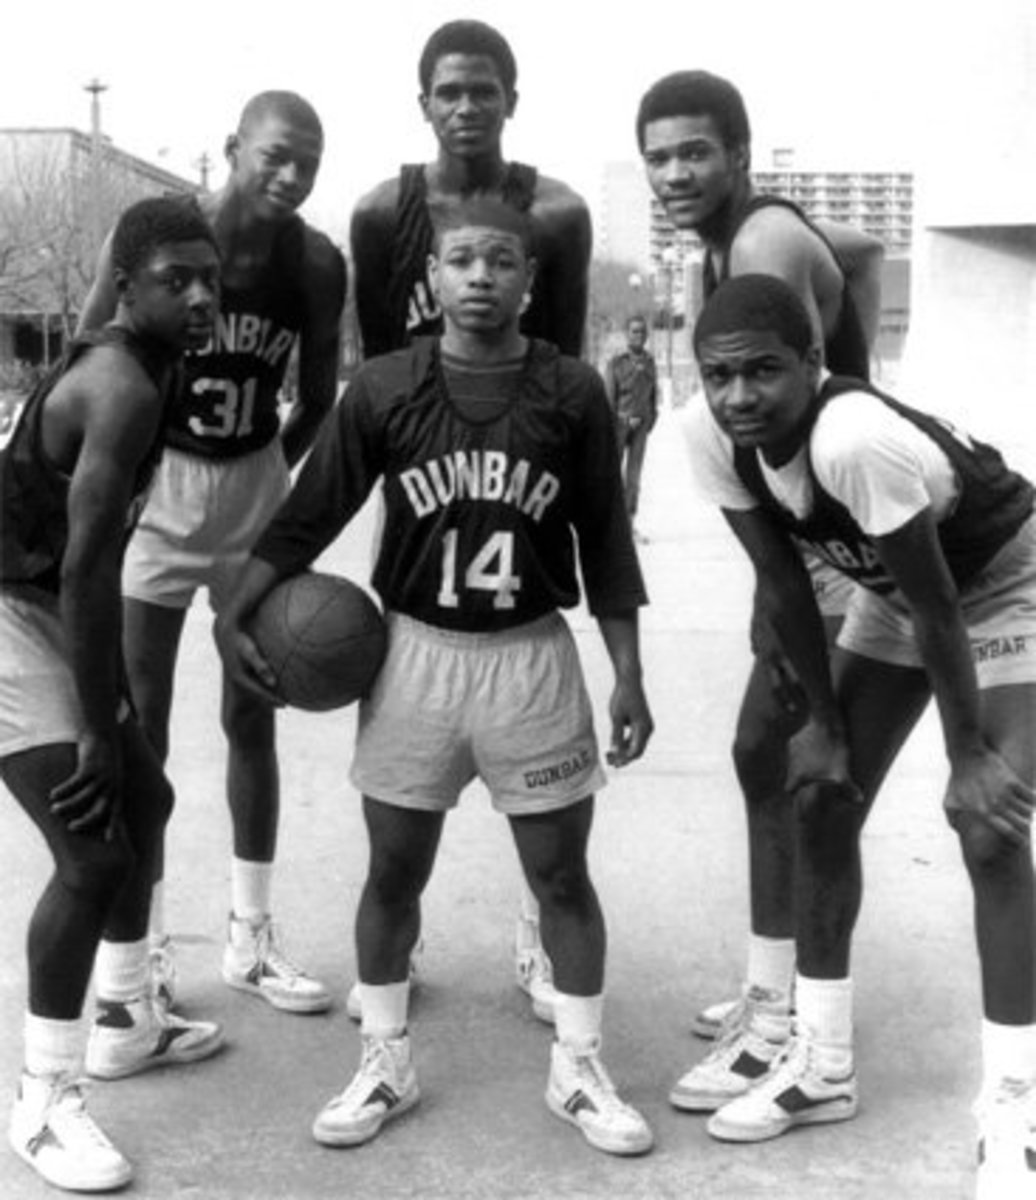 EAST BALTIMORE POETS: The Greatest High School Basketball Team Ever